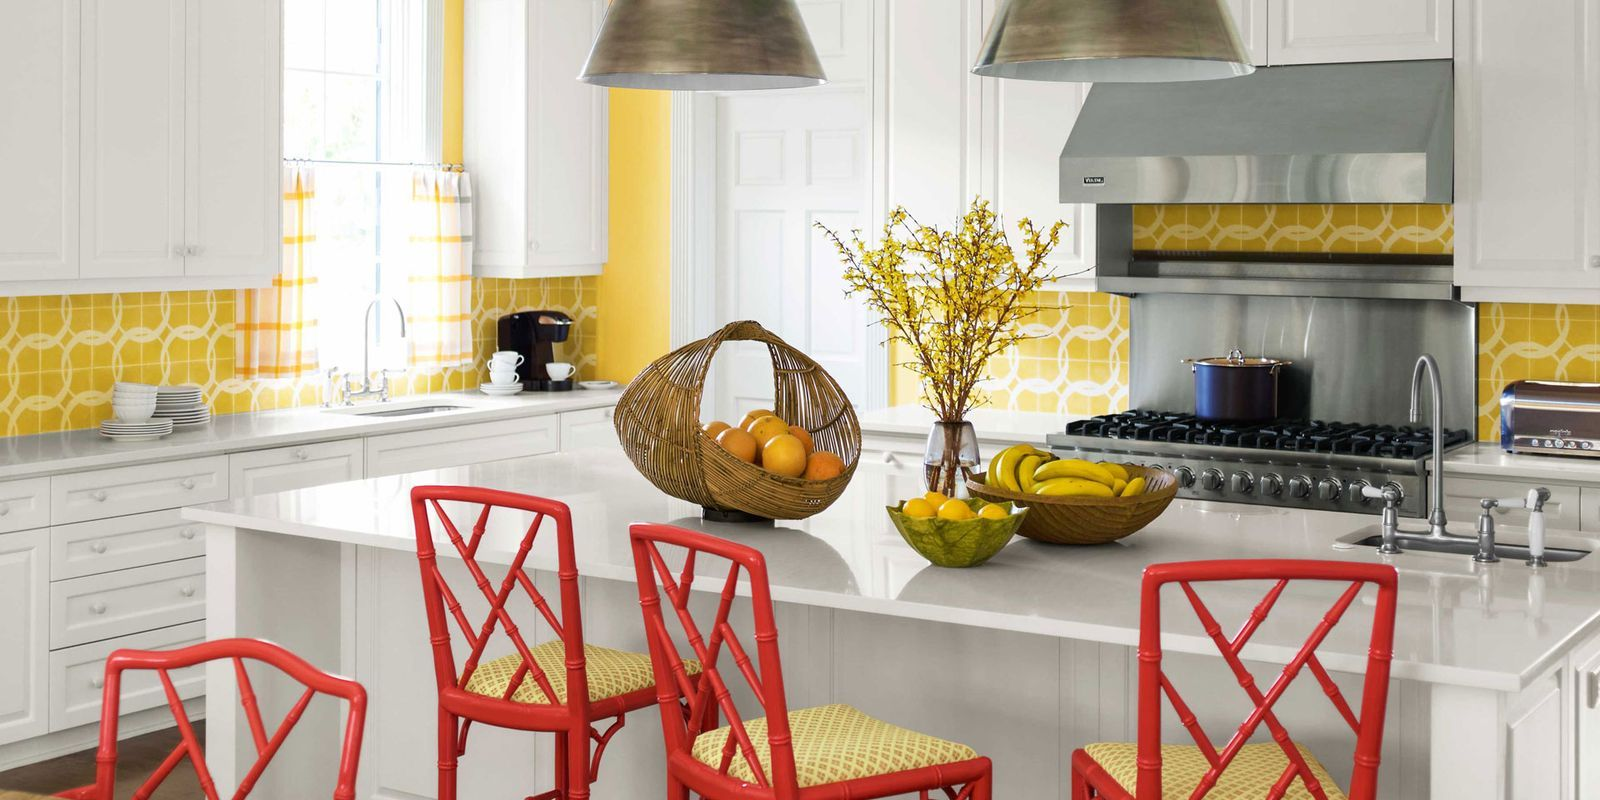 red bamboo chippendale chairs & Popular Kitchen Paint and Cabinet Colors - Colorful Kitchen Pictures